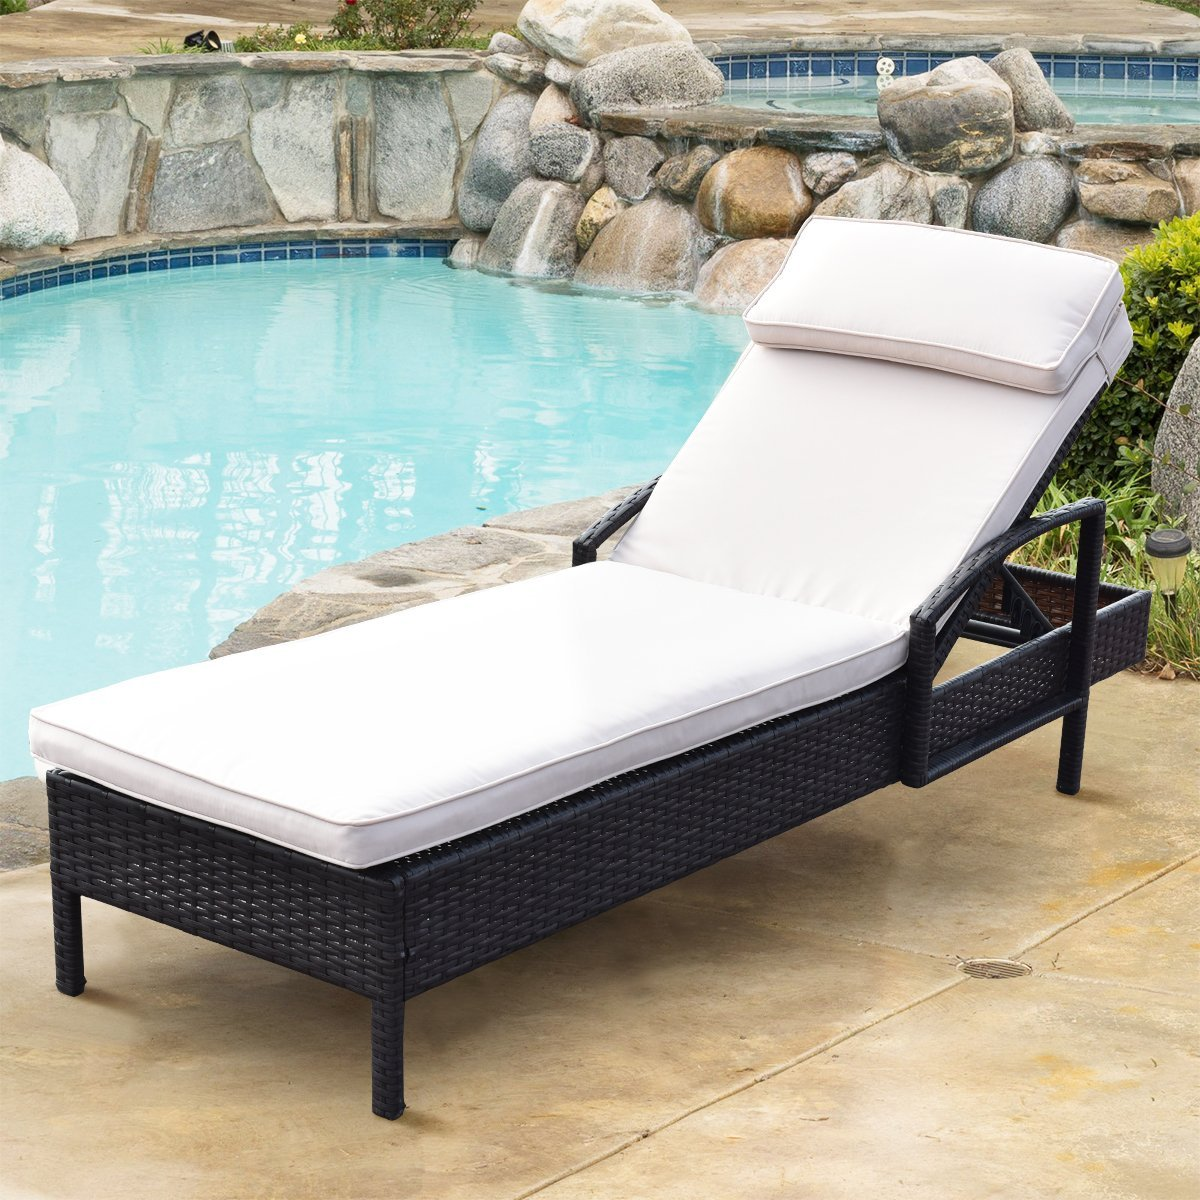 TANGKULA Patio Reclining Chaise Lounge Outdoor Beach Pool Yard Porch Wicker Rattan Adjustable Backrest Lounger Chair (without wheel)